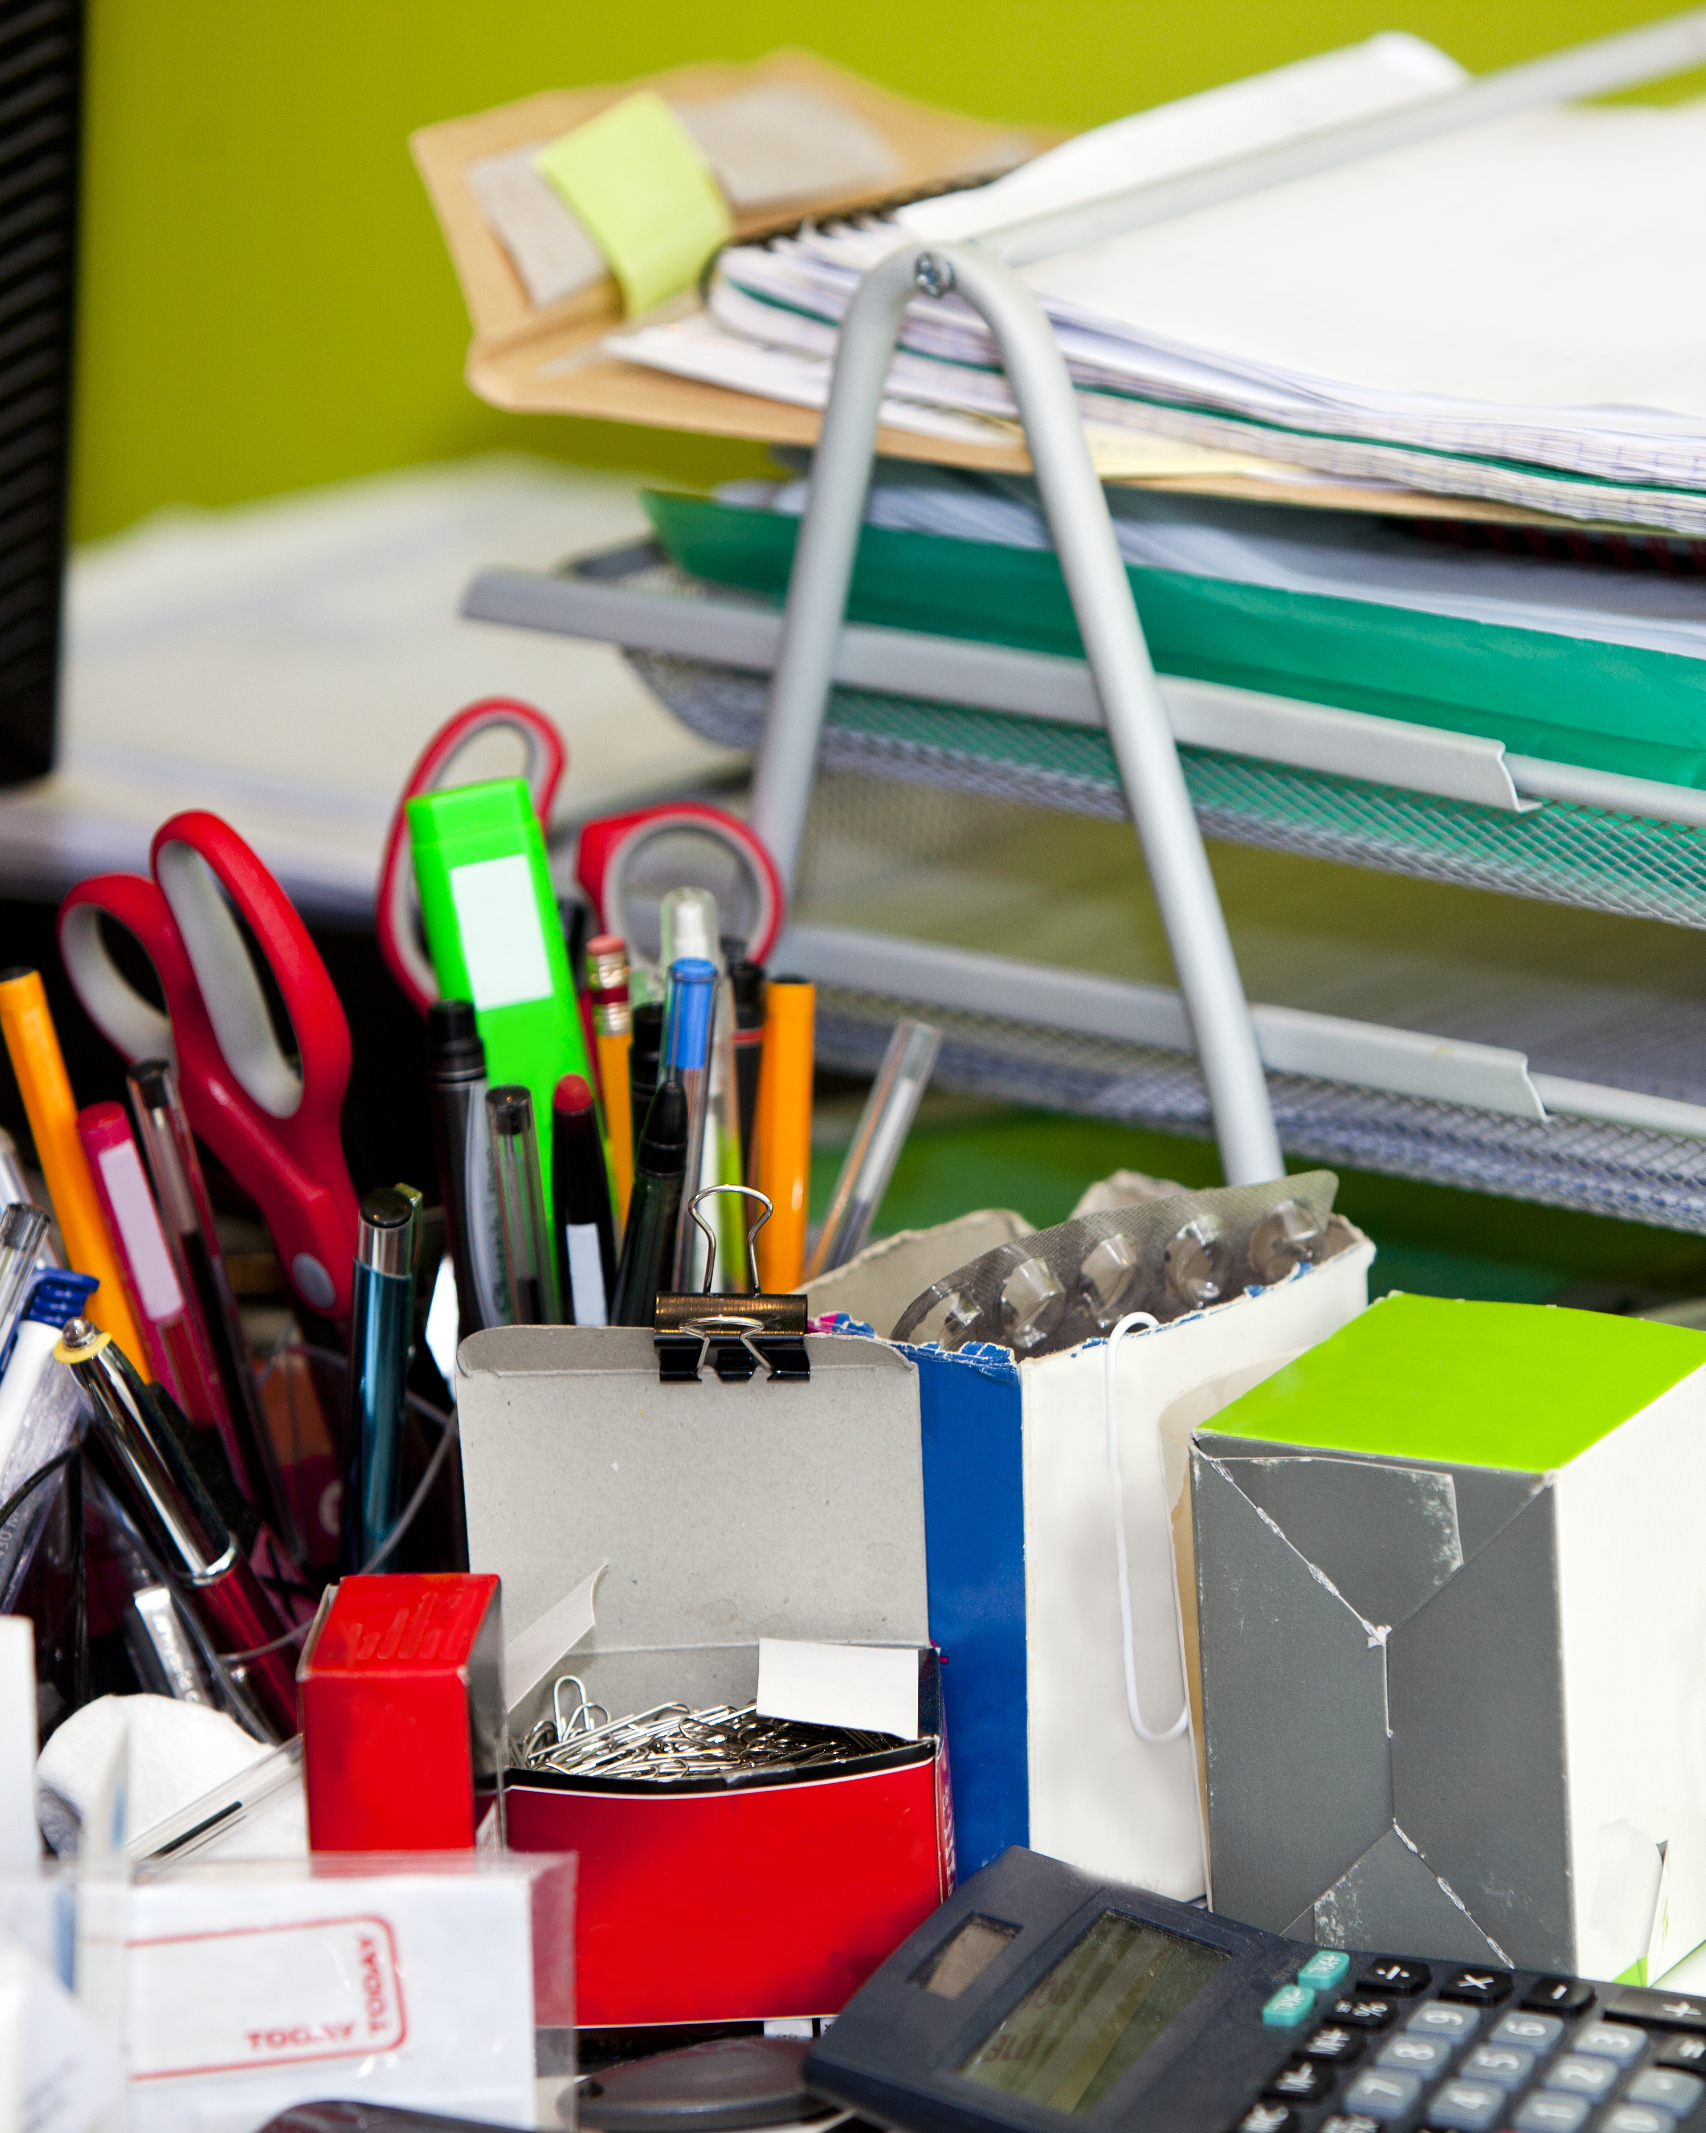 8 Creative Ways To Clear Clutter In